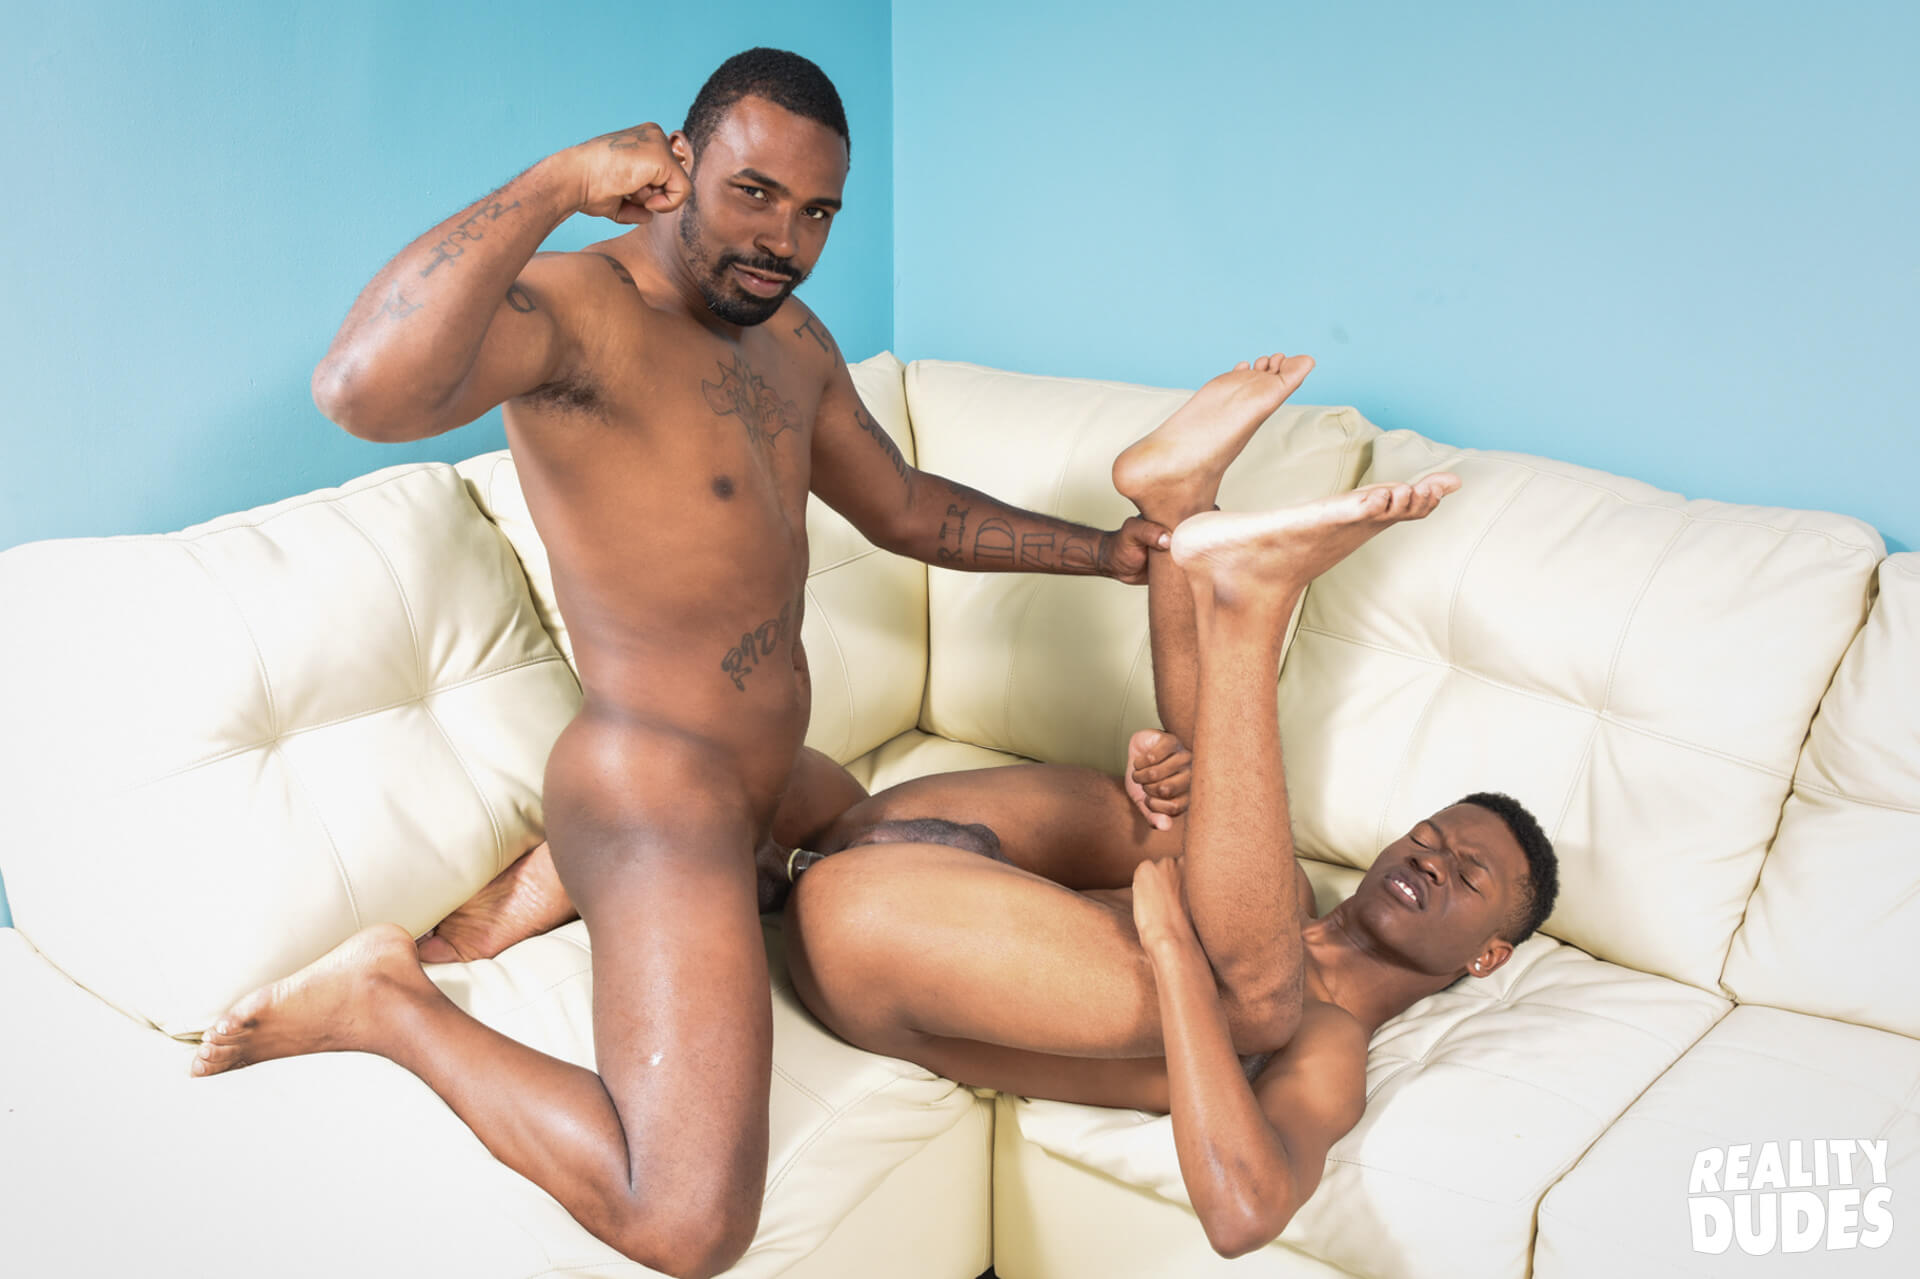 reality dudes reality thugs philly mack attack kylan gay porn blog image 45